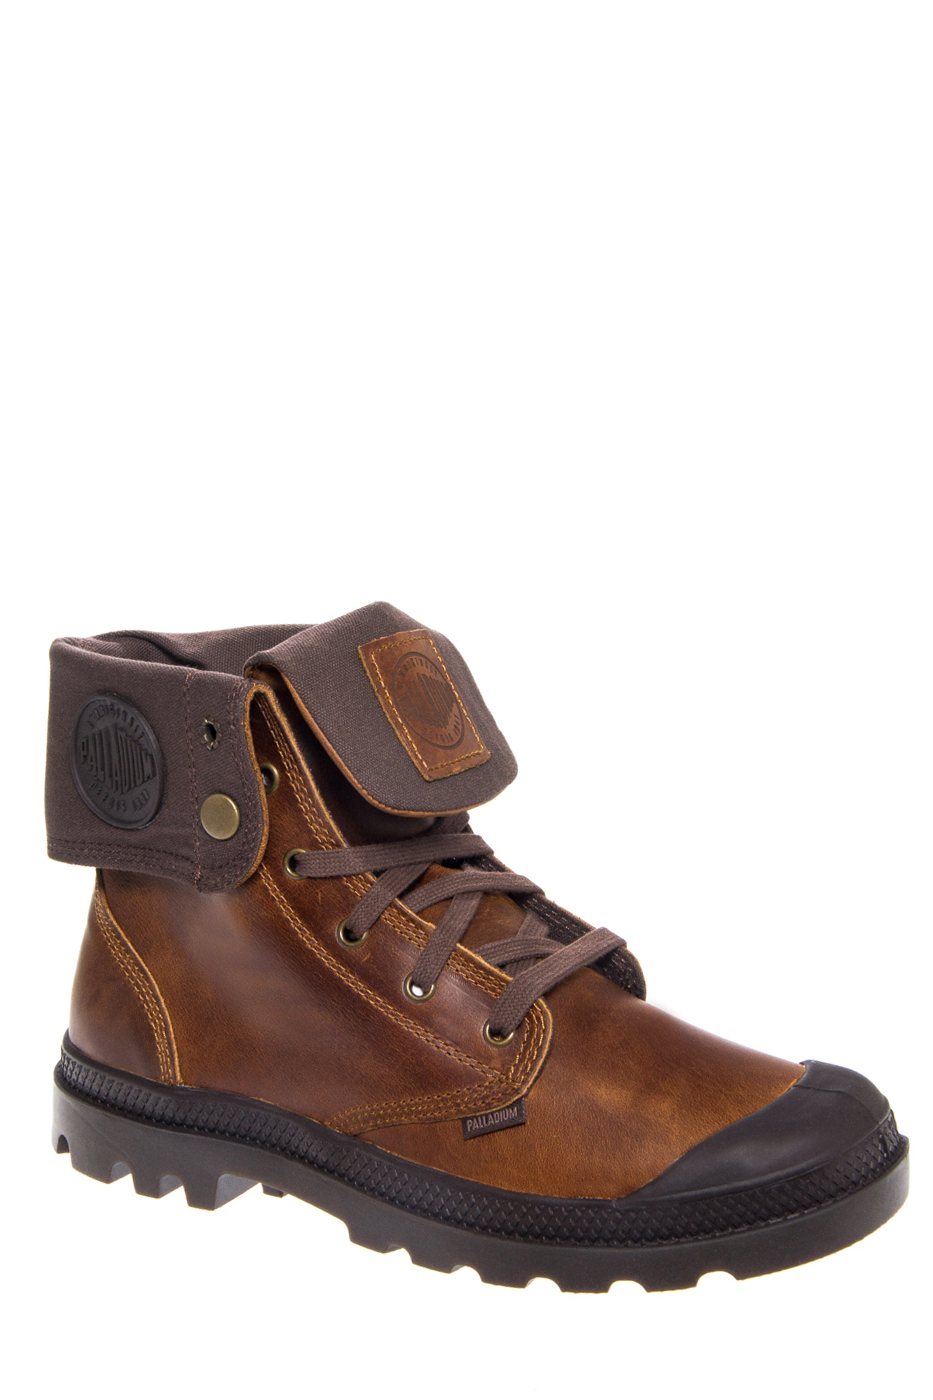 dc5f76d8770 UPC 845946030694 - Palladium Pampa Baggy Leather Ankle Boots ...